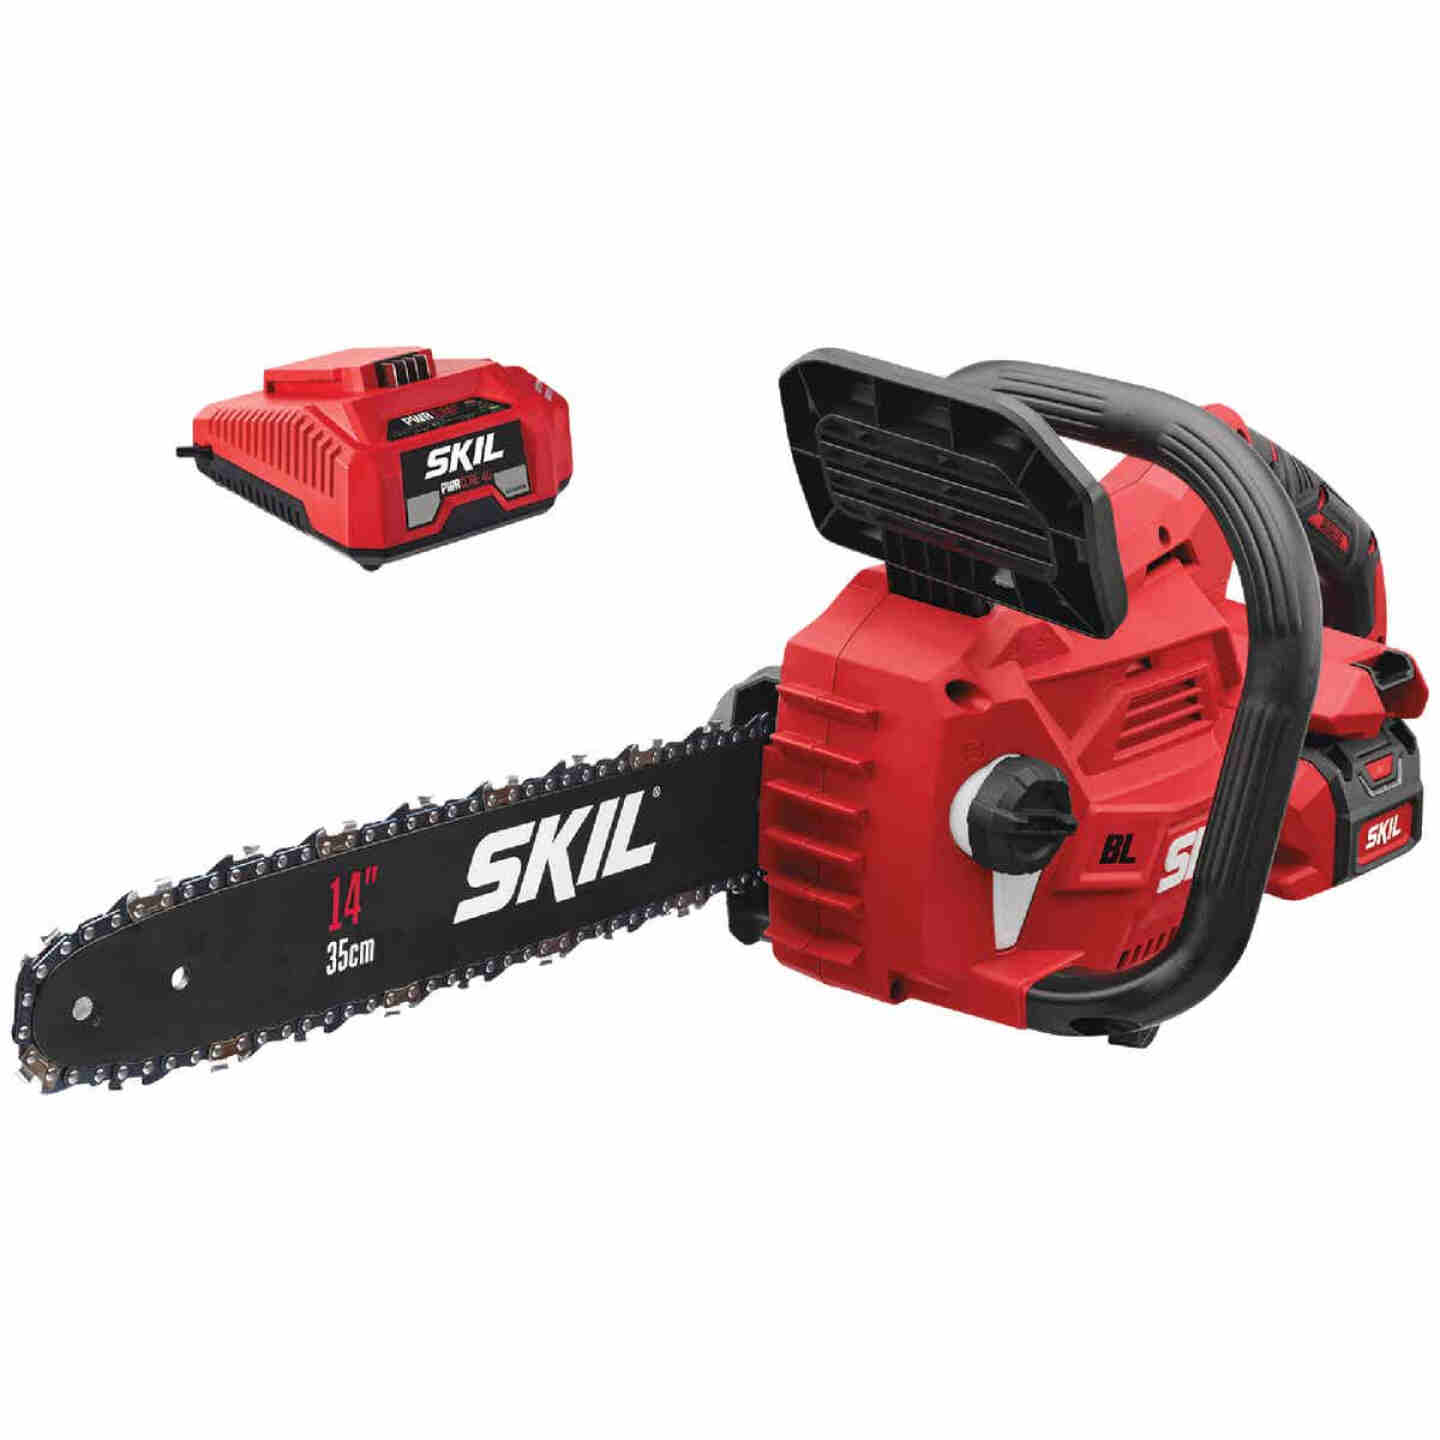 SKIL PWRCore 14 In. 40V Brushless Chainsaw with AutoPWRJump Charger Image 1